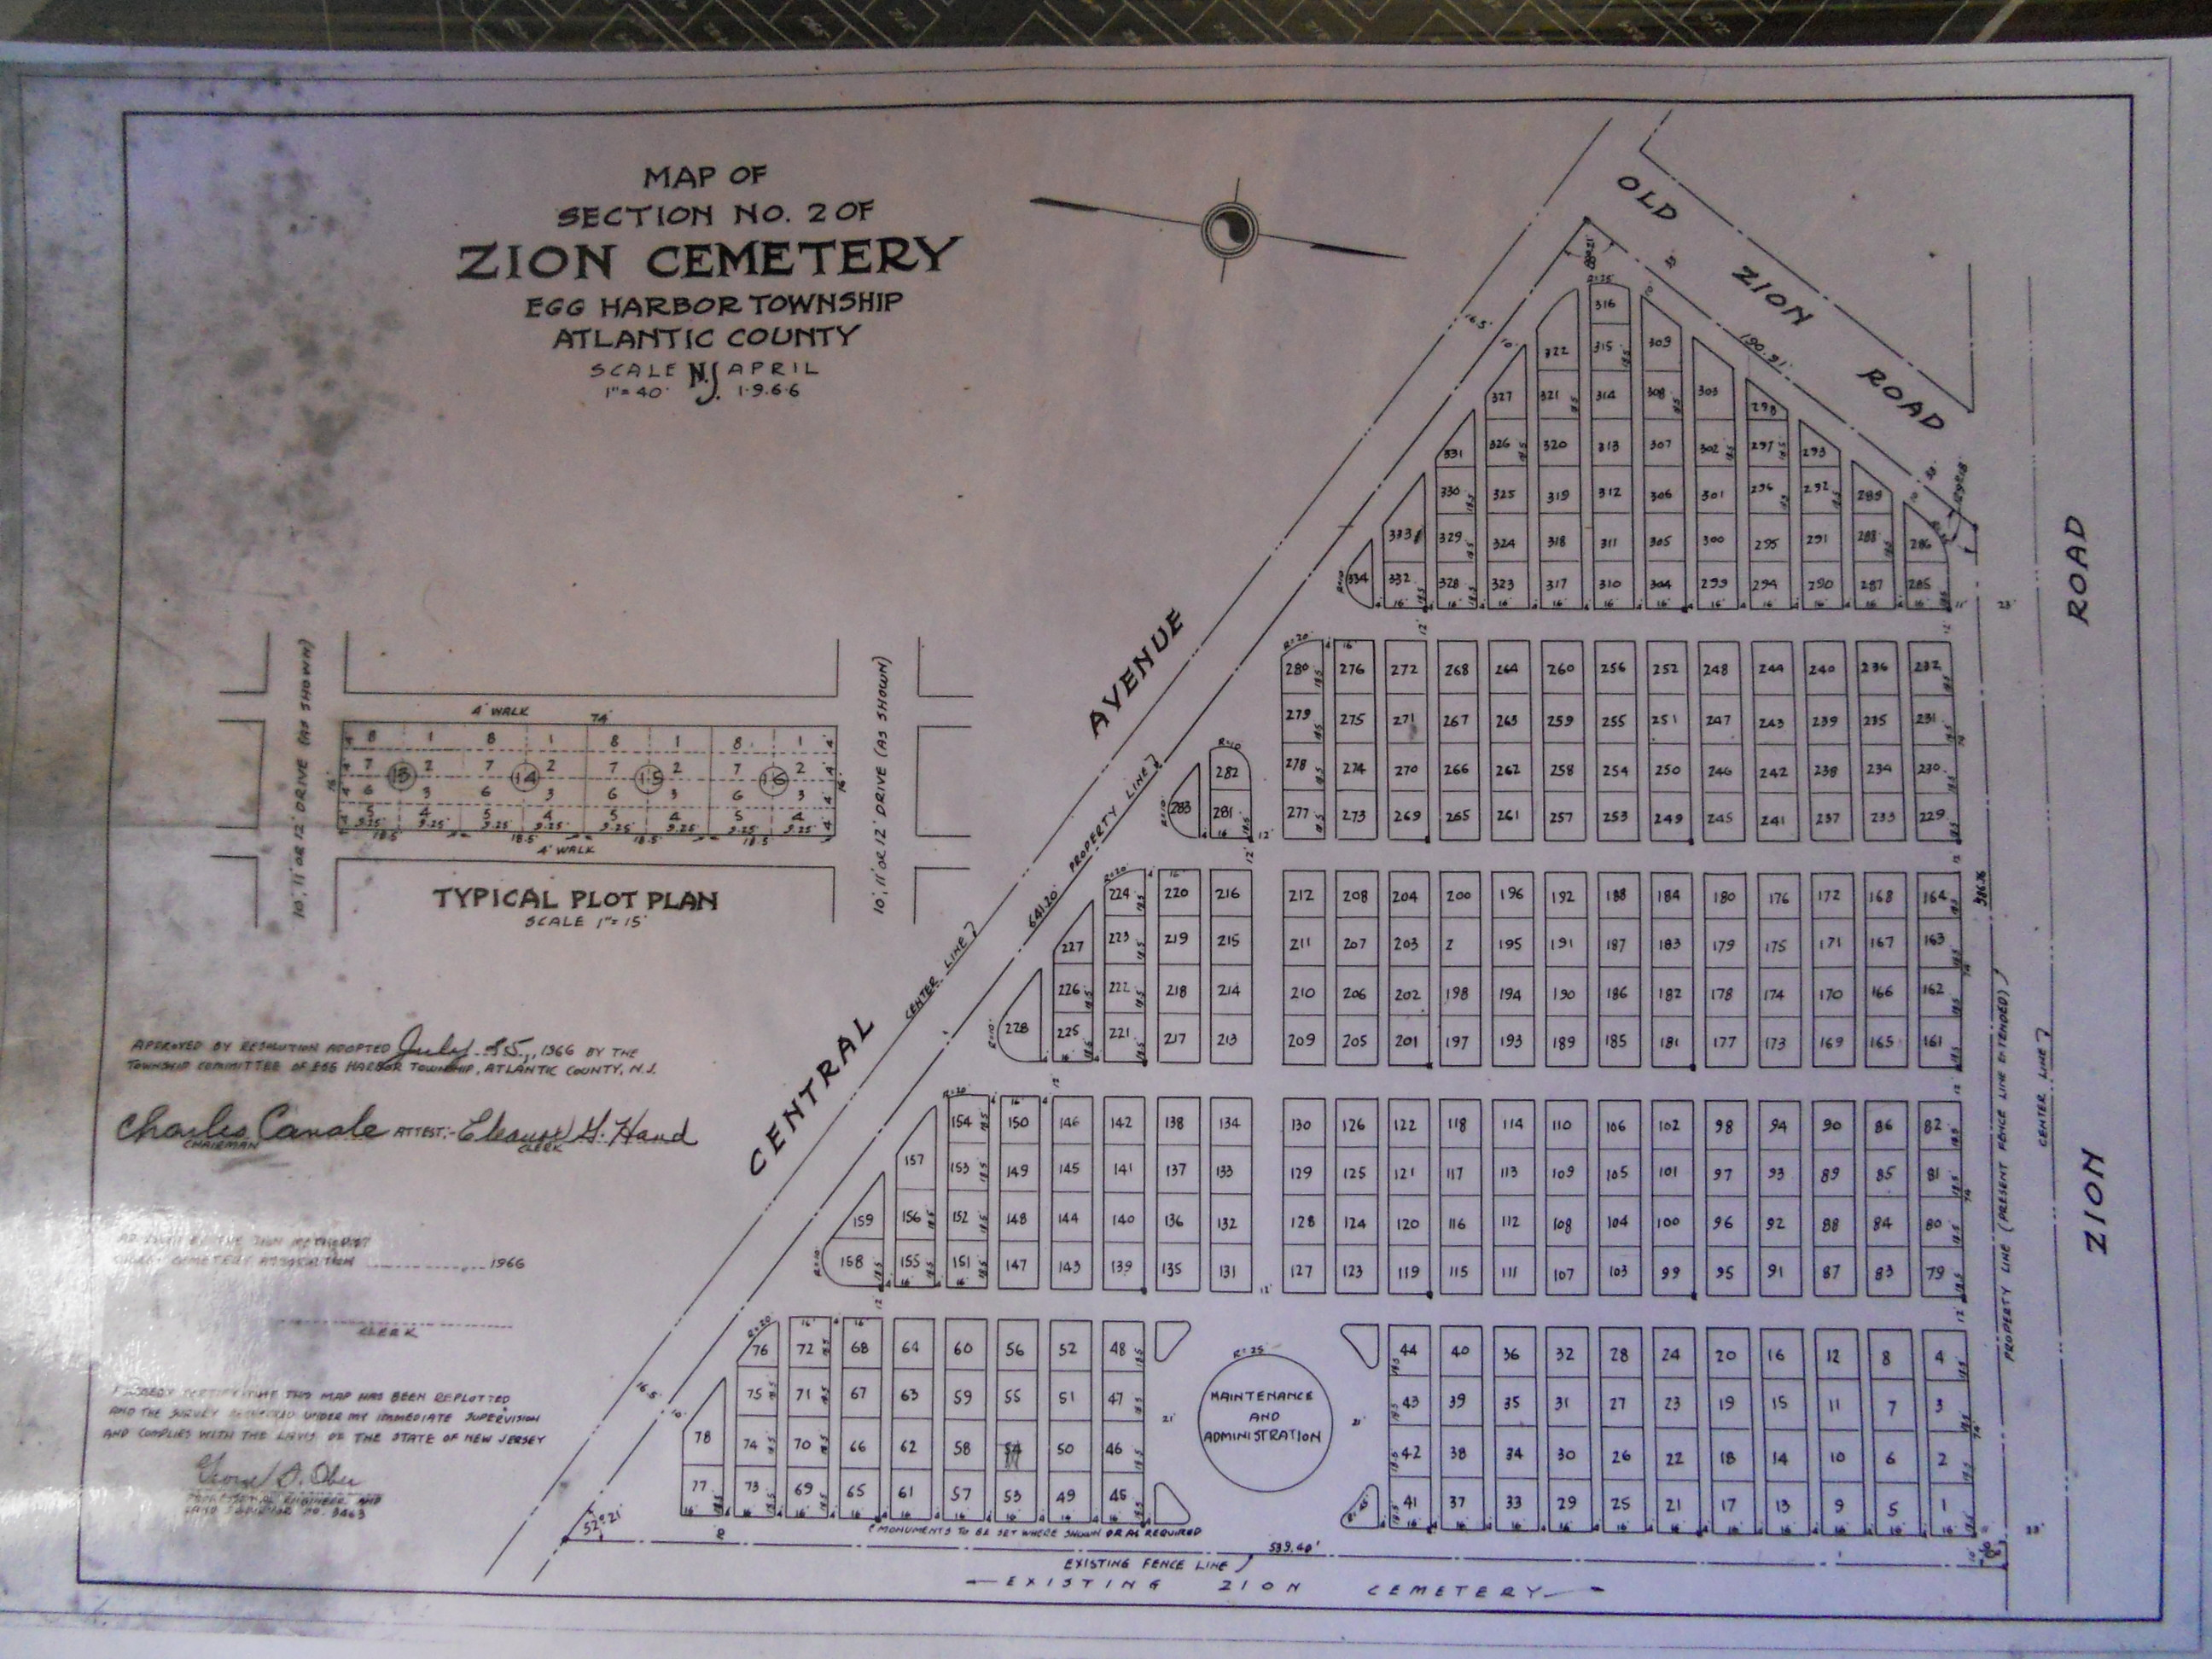 Zion Cemetery in Bargaintown, New Jersey - Find A Grave Cemetery